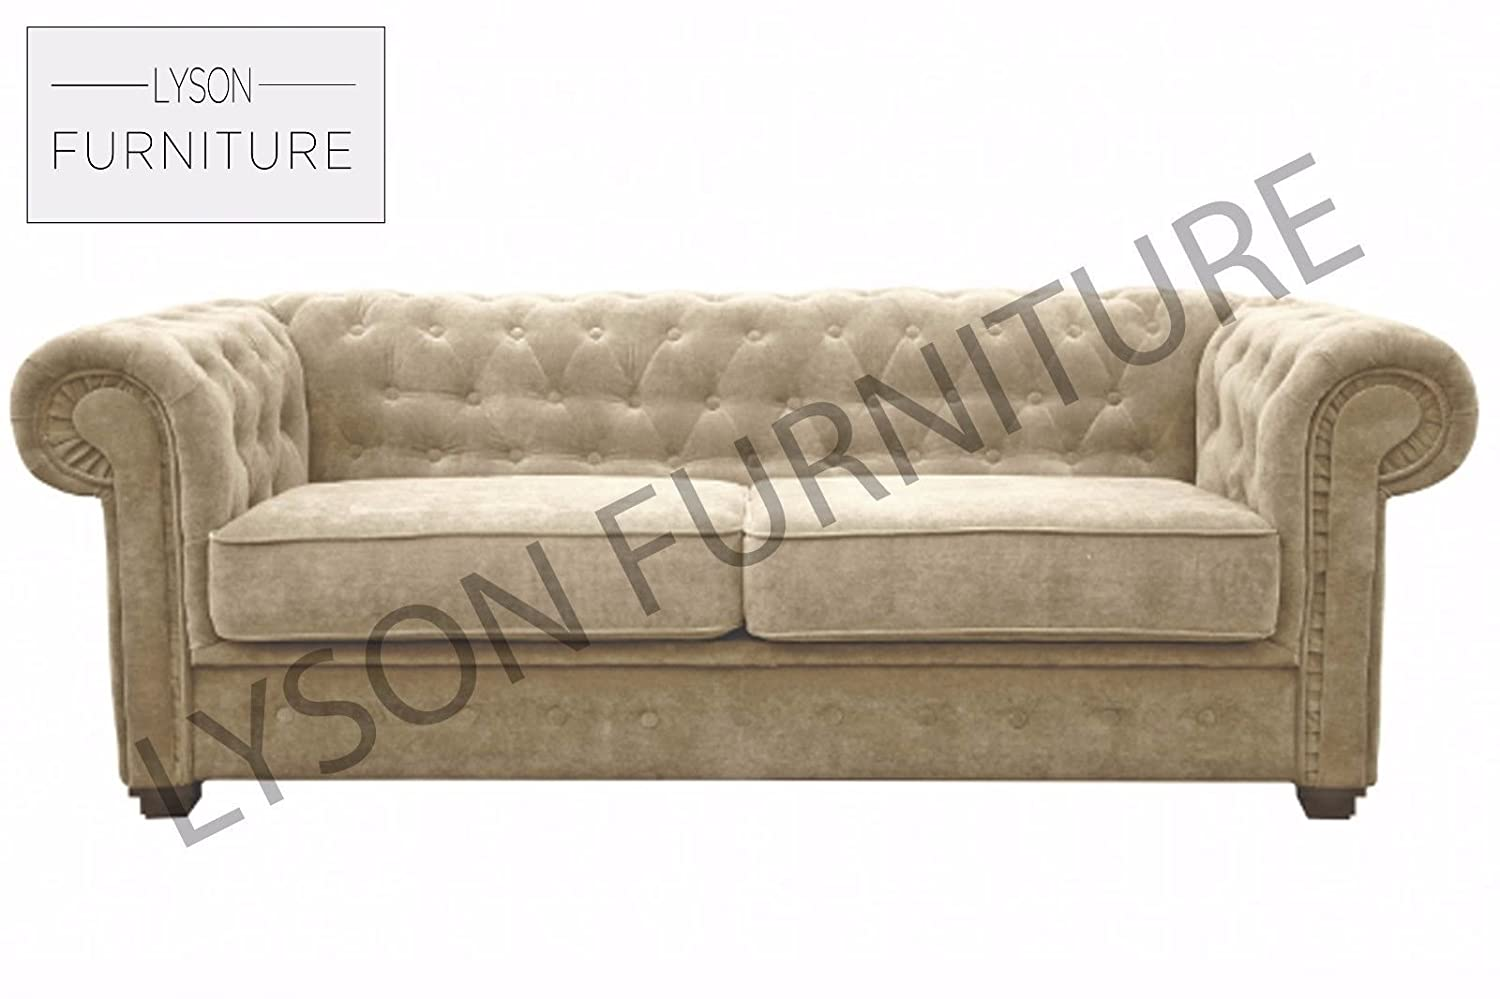 Imperial Sofa Bed Chesterfield Fabric 3 Seater Cream  ~ Cream Leather Chesterfield Sofa